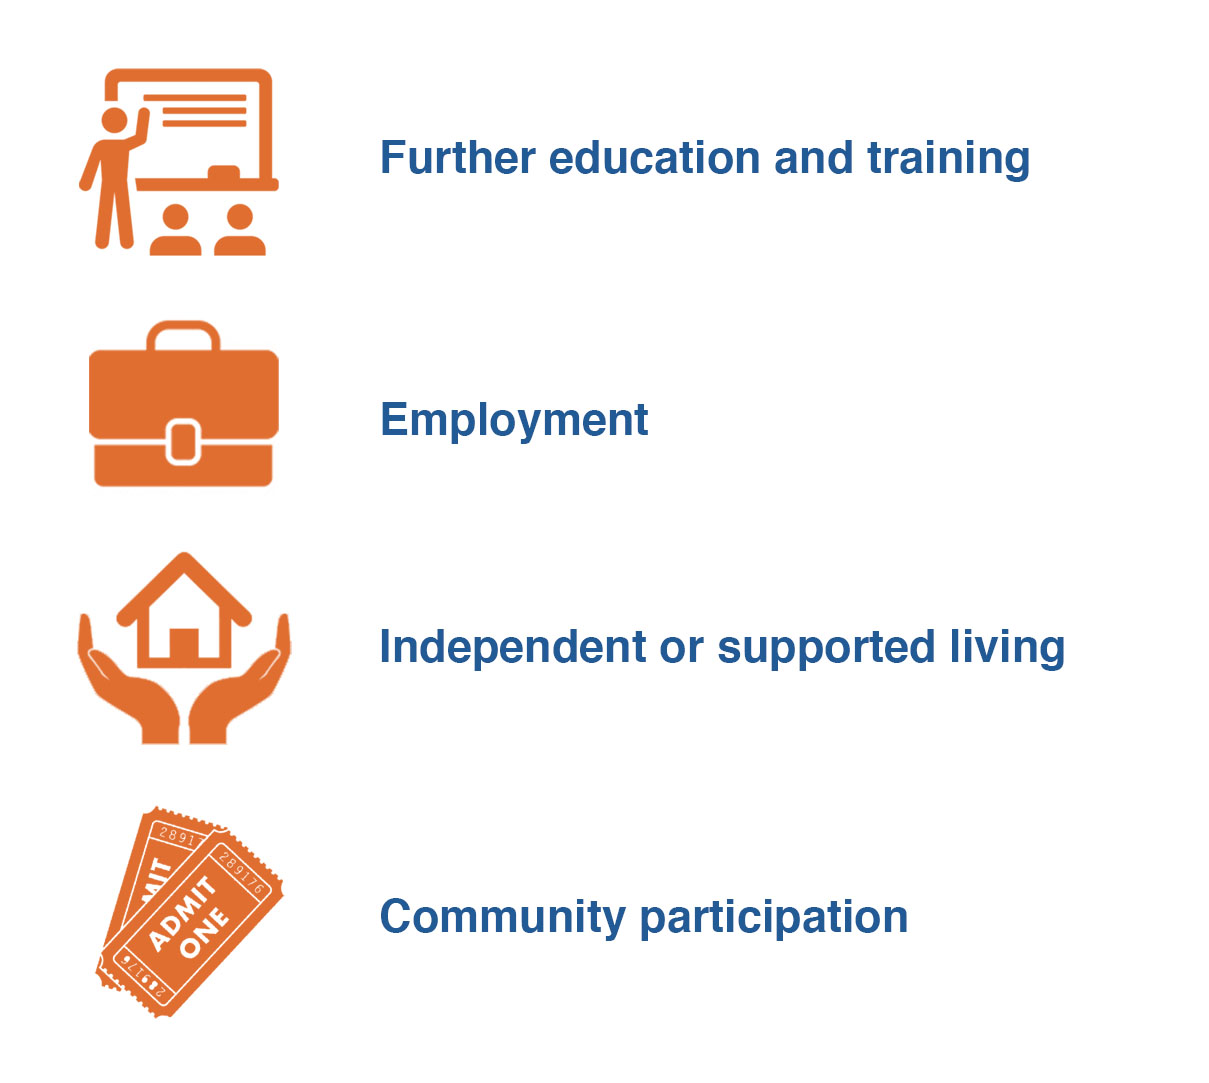 Image showing the text 'Further education and training, Employment, Independent or supported living, Commuinty participation'